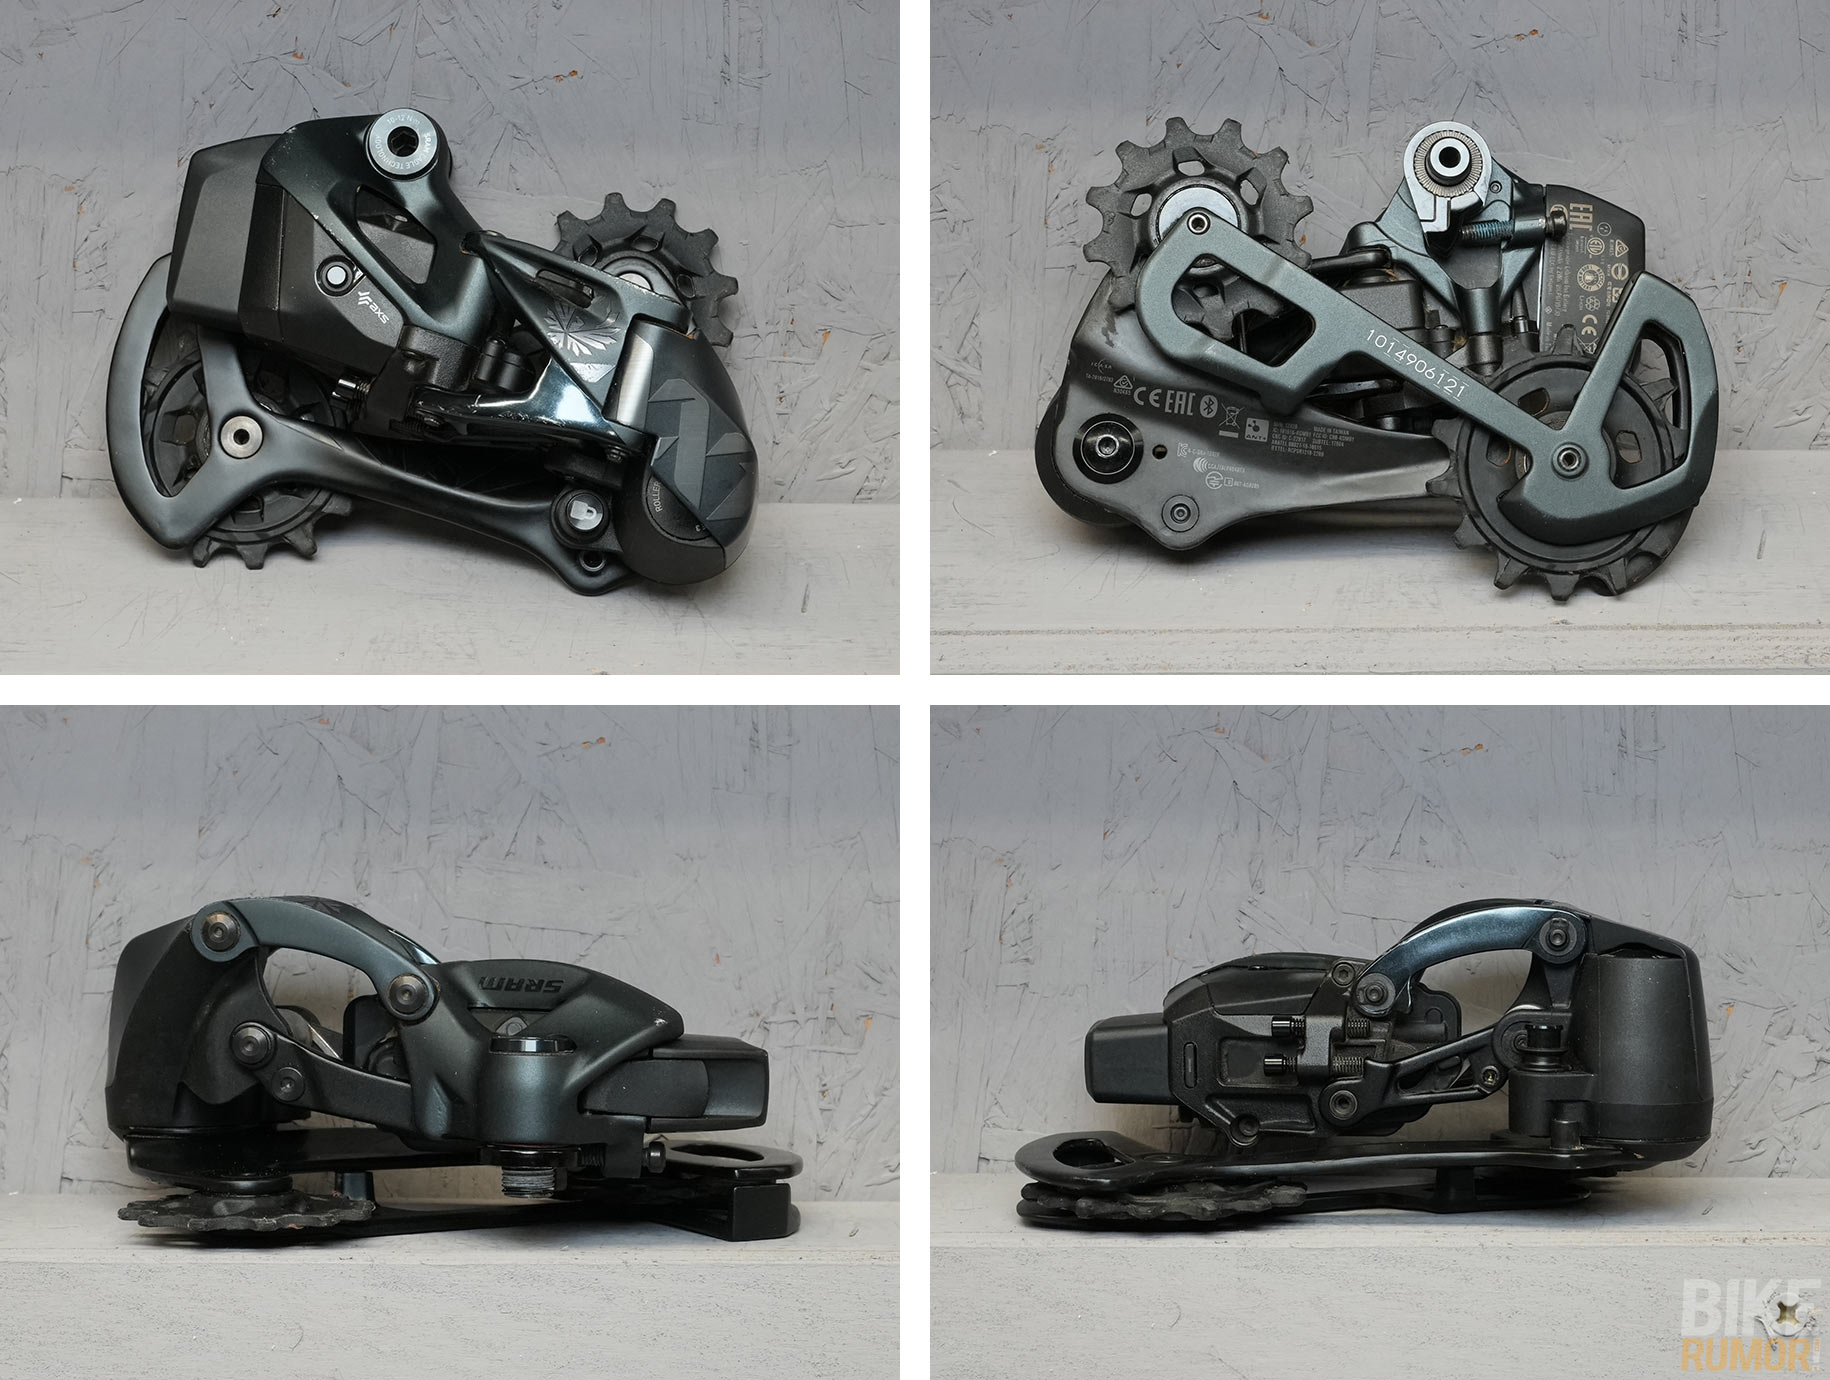 sram xx1 eagle axs wireless rear derailleur comparison